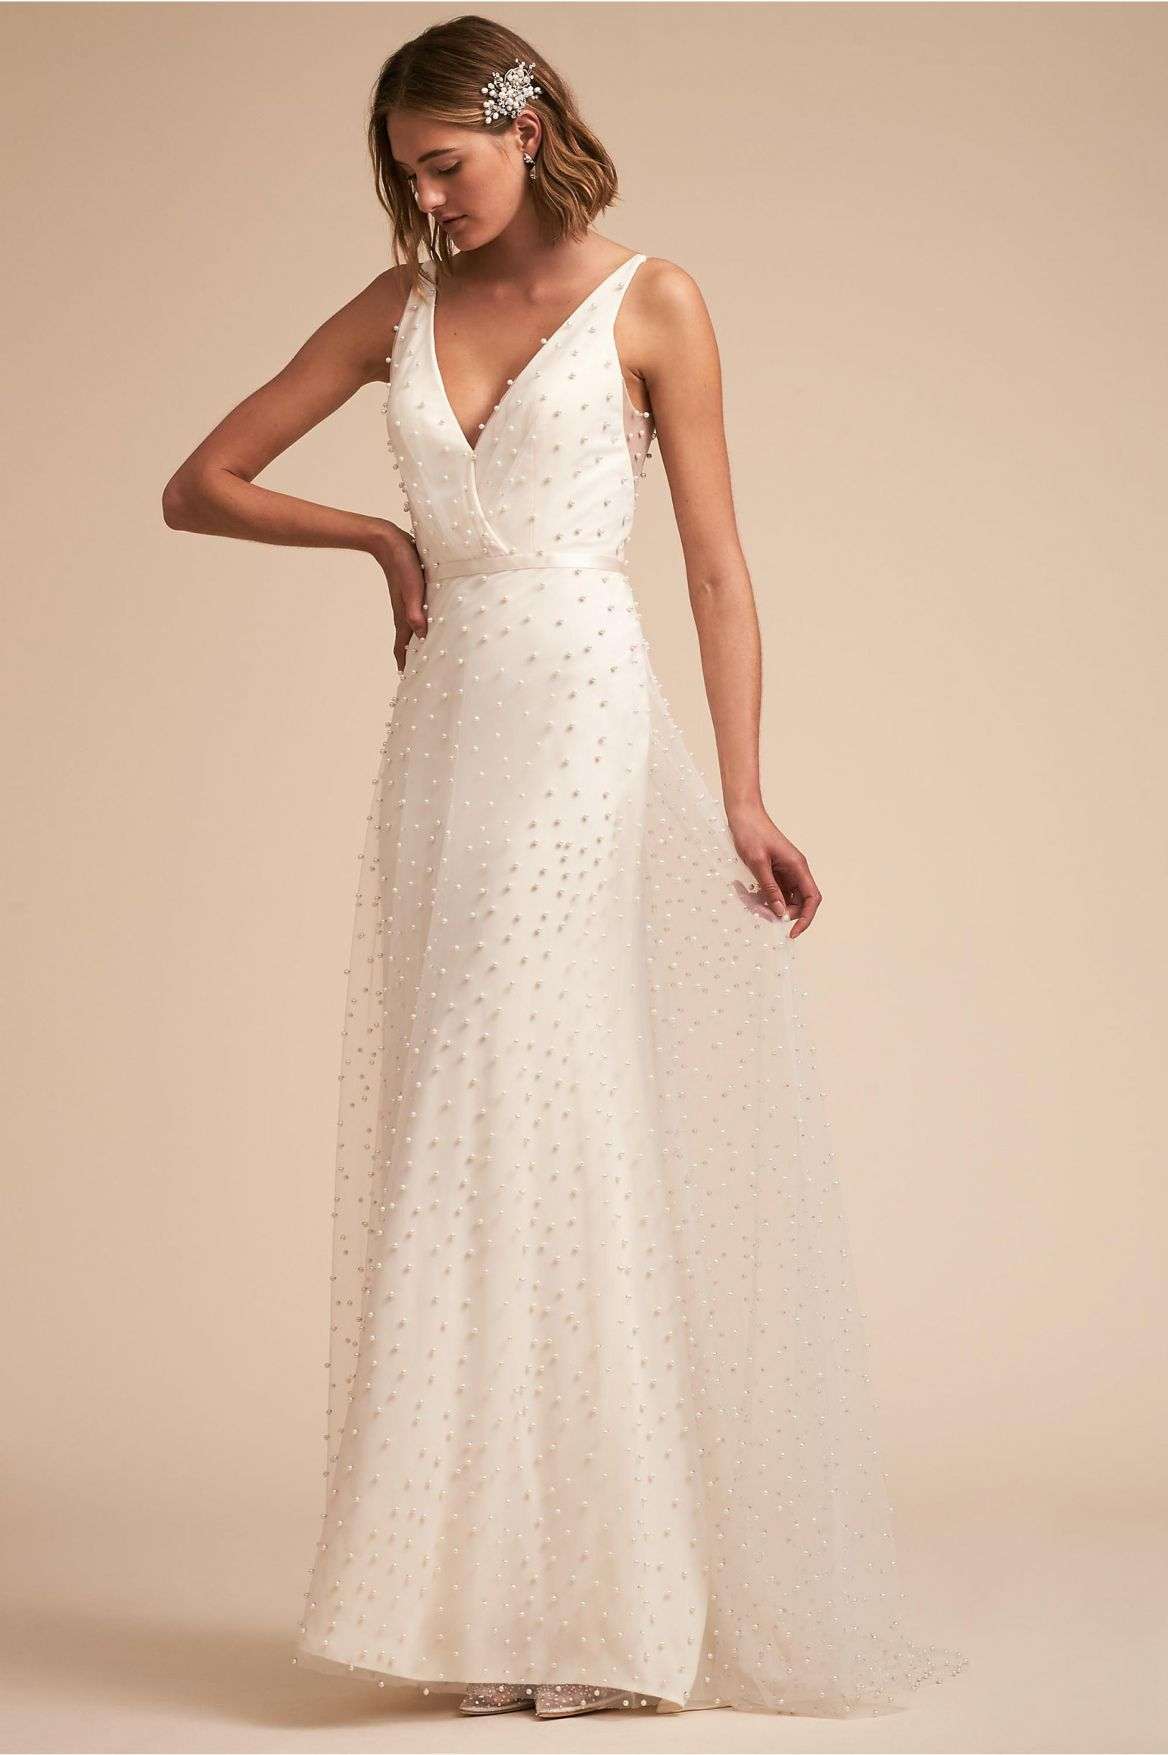 5db0ce2d86 2019 Beholden Wedding Dresses - Plus Size Dresses for Wedding Guests Check  more at http